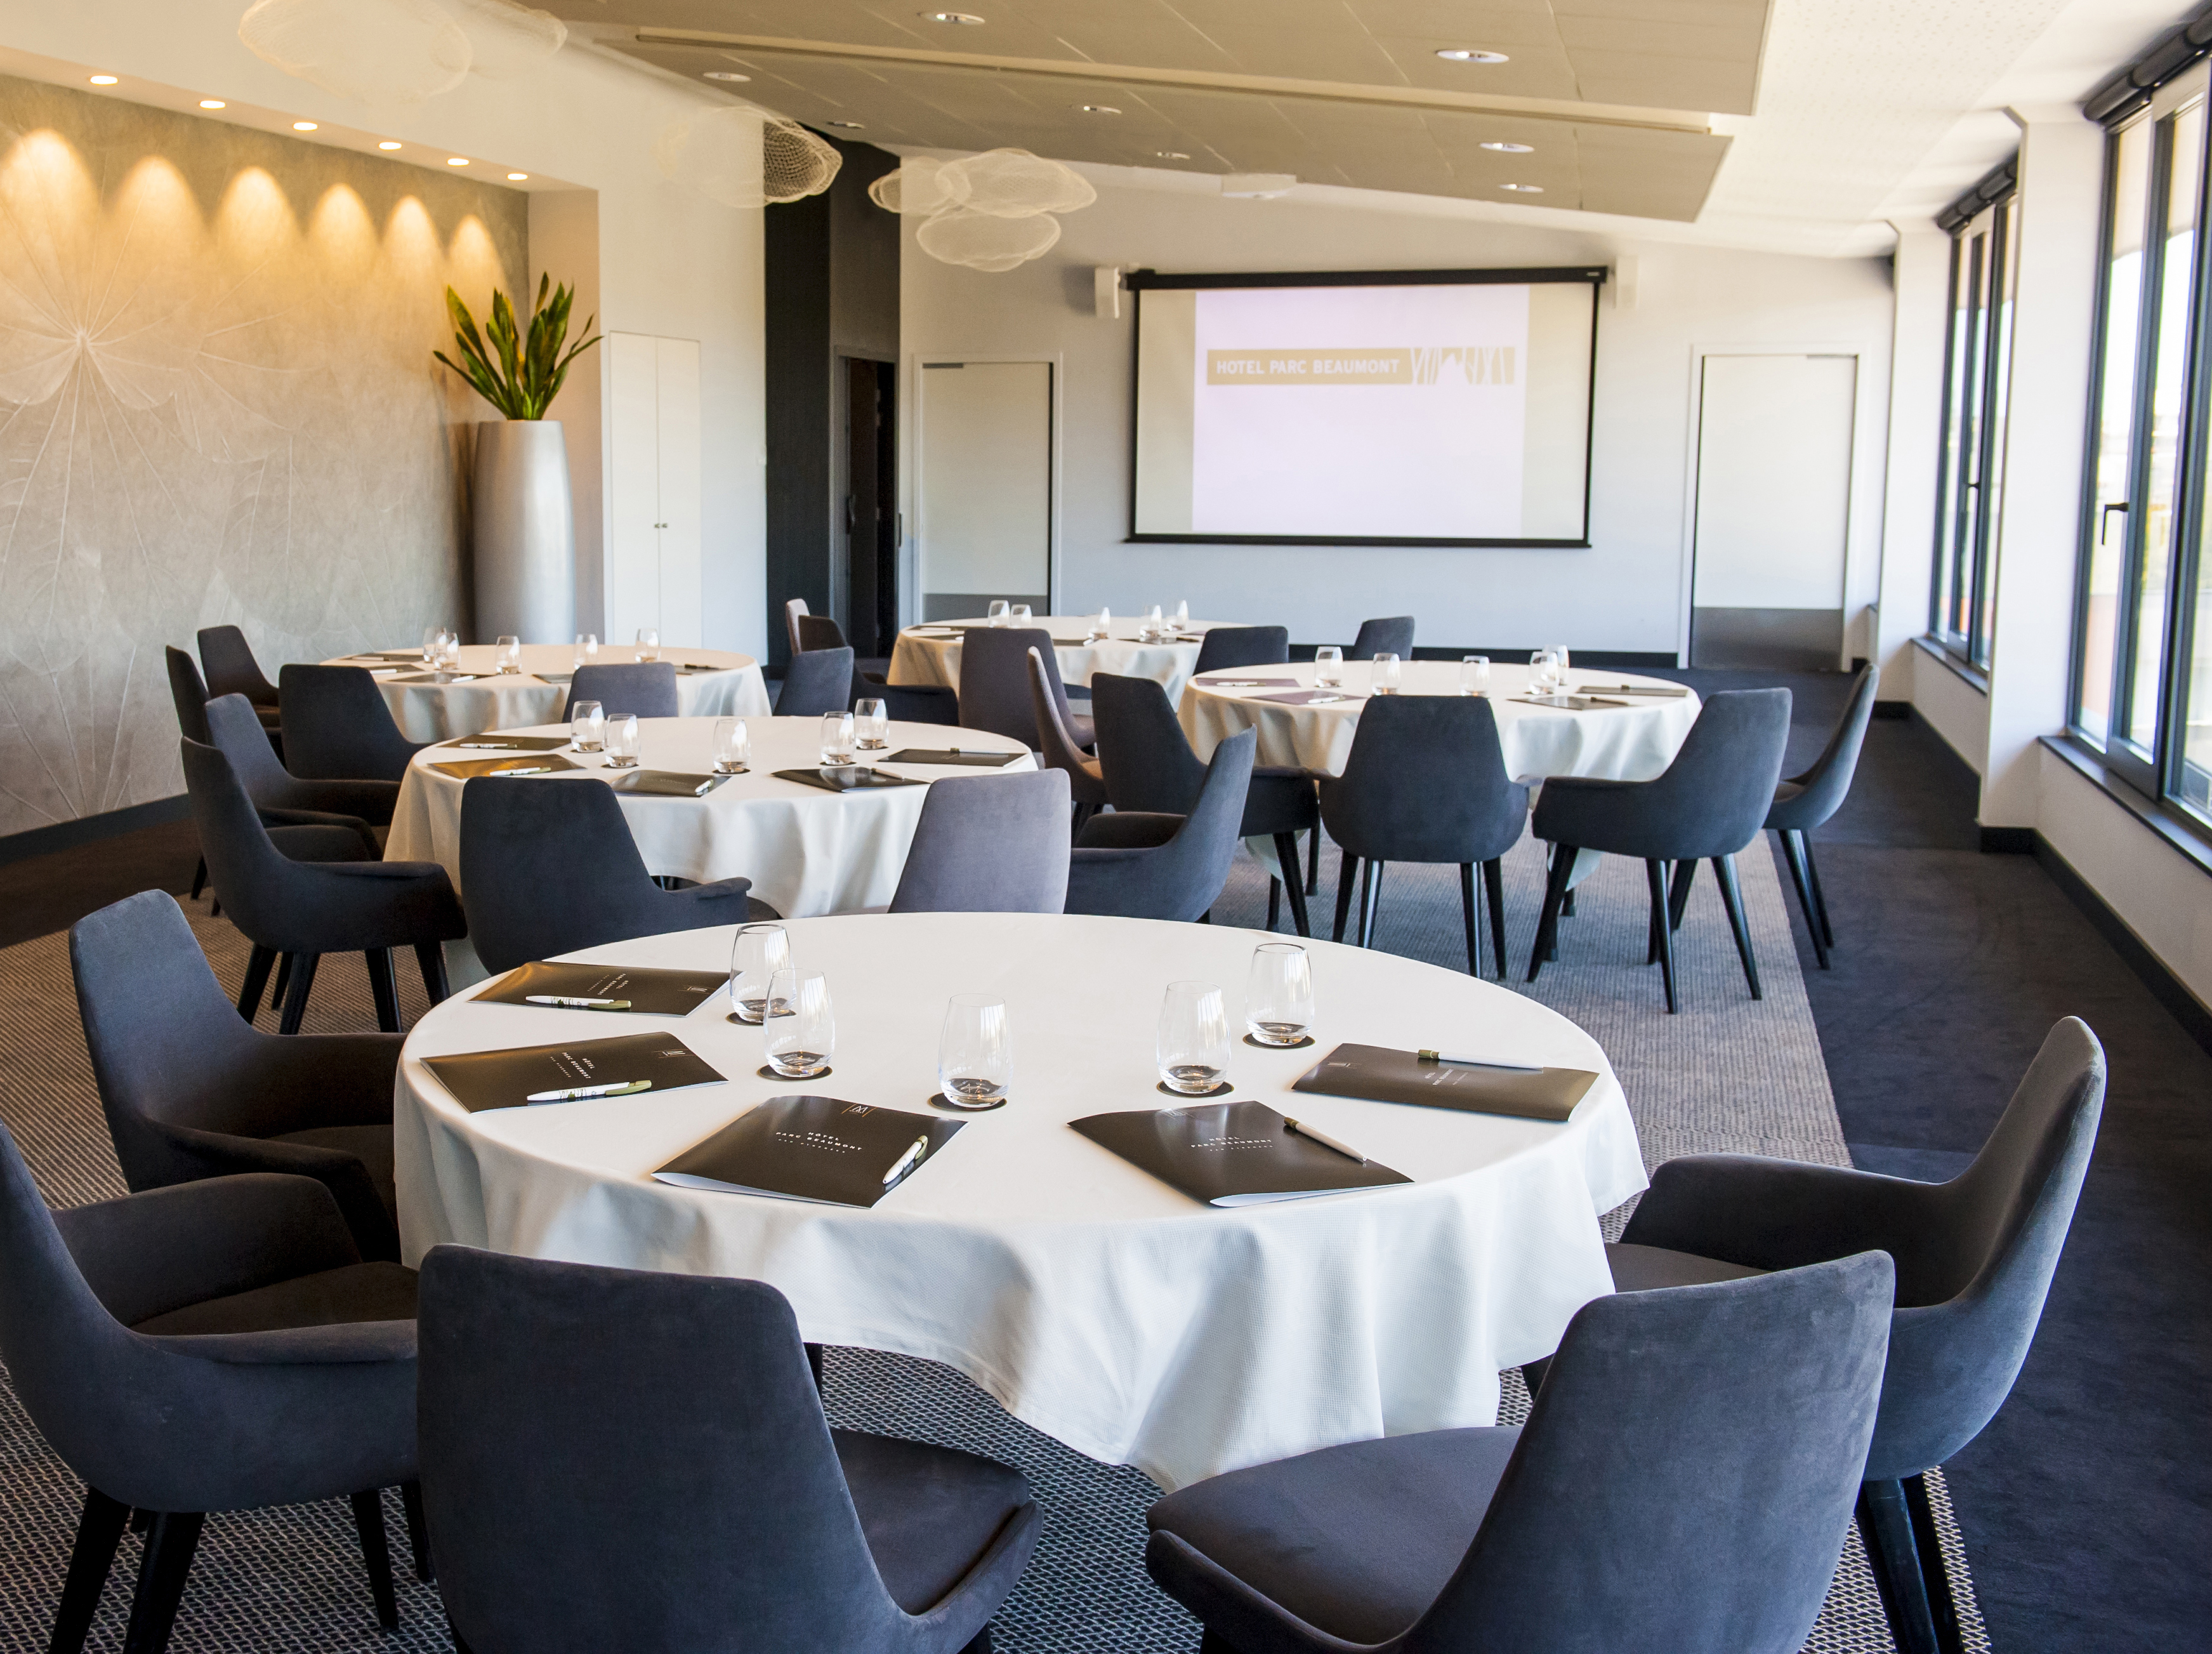 Meeting on the fourth floor, Hôtel Parc Beaumont in Pau